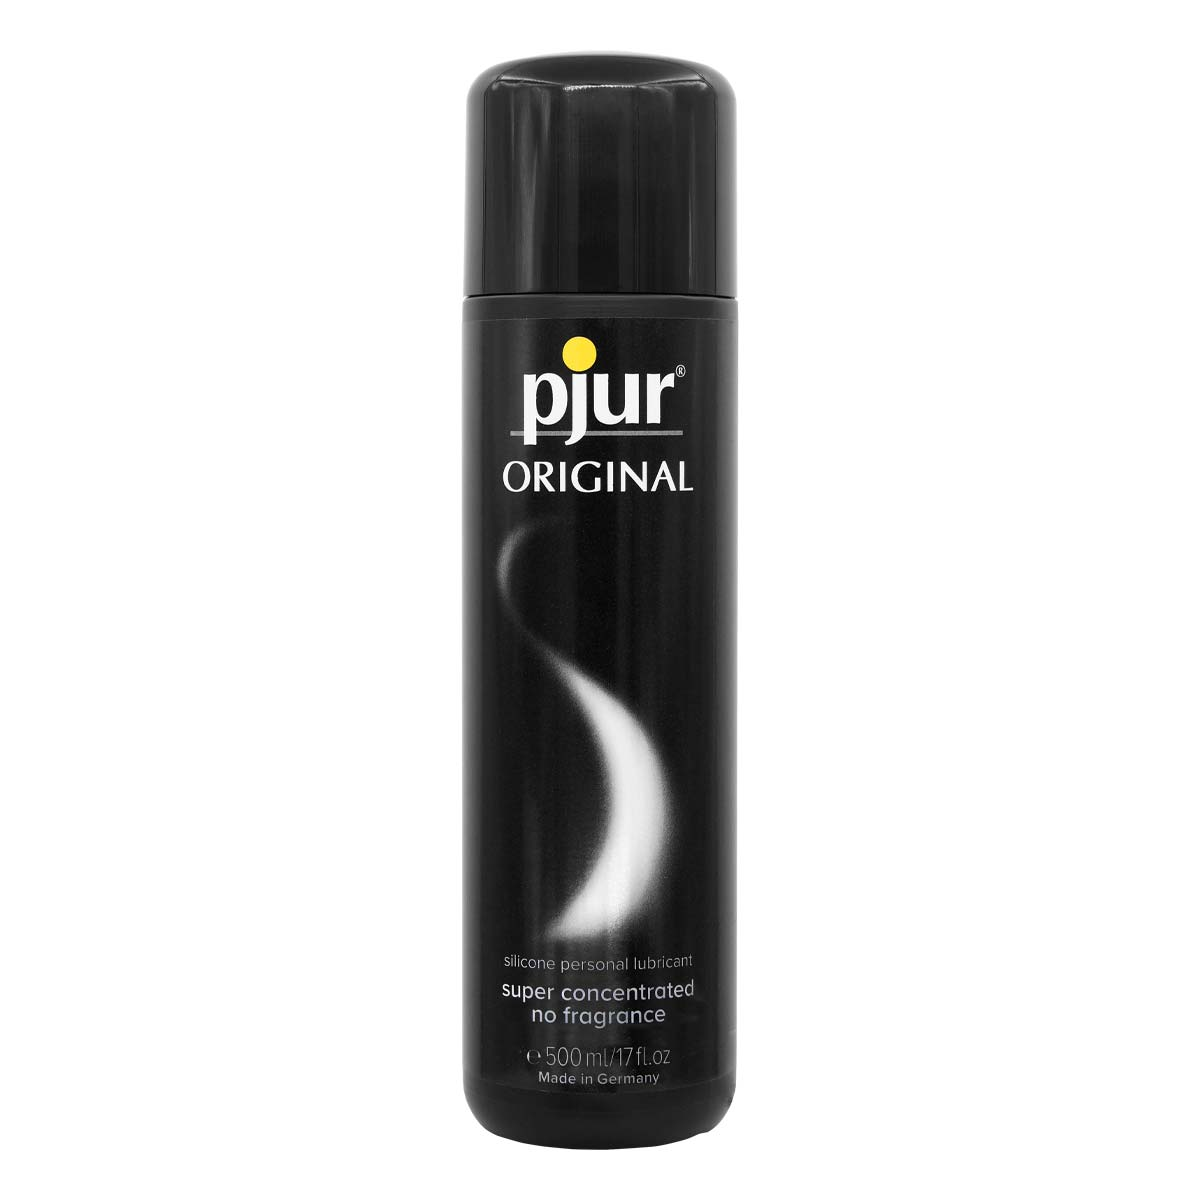 pjur ORIGINAL 500ml Silicone-based Lubricant - International Edition